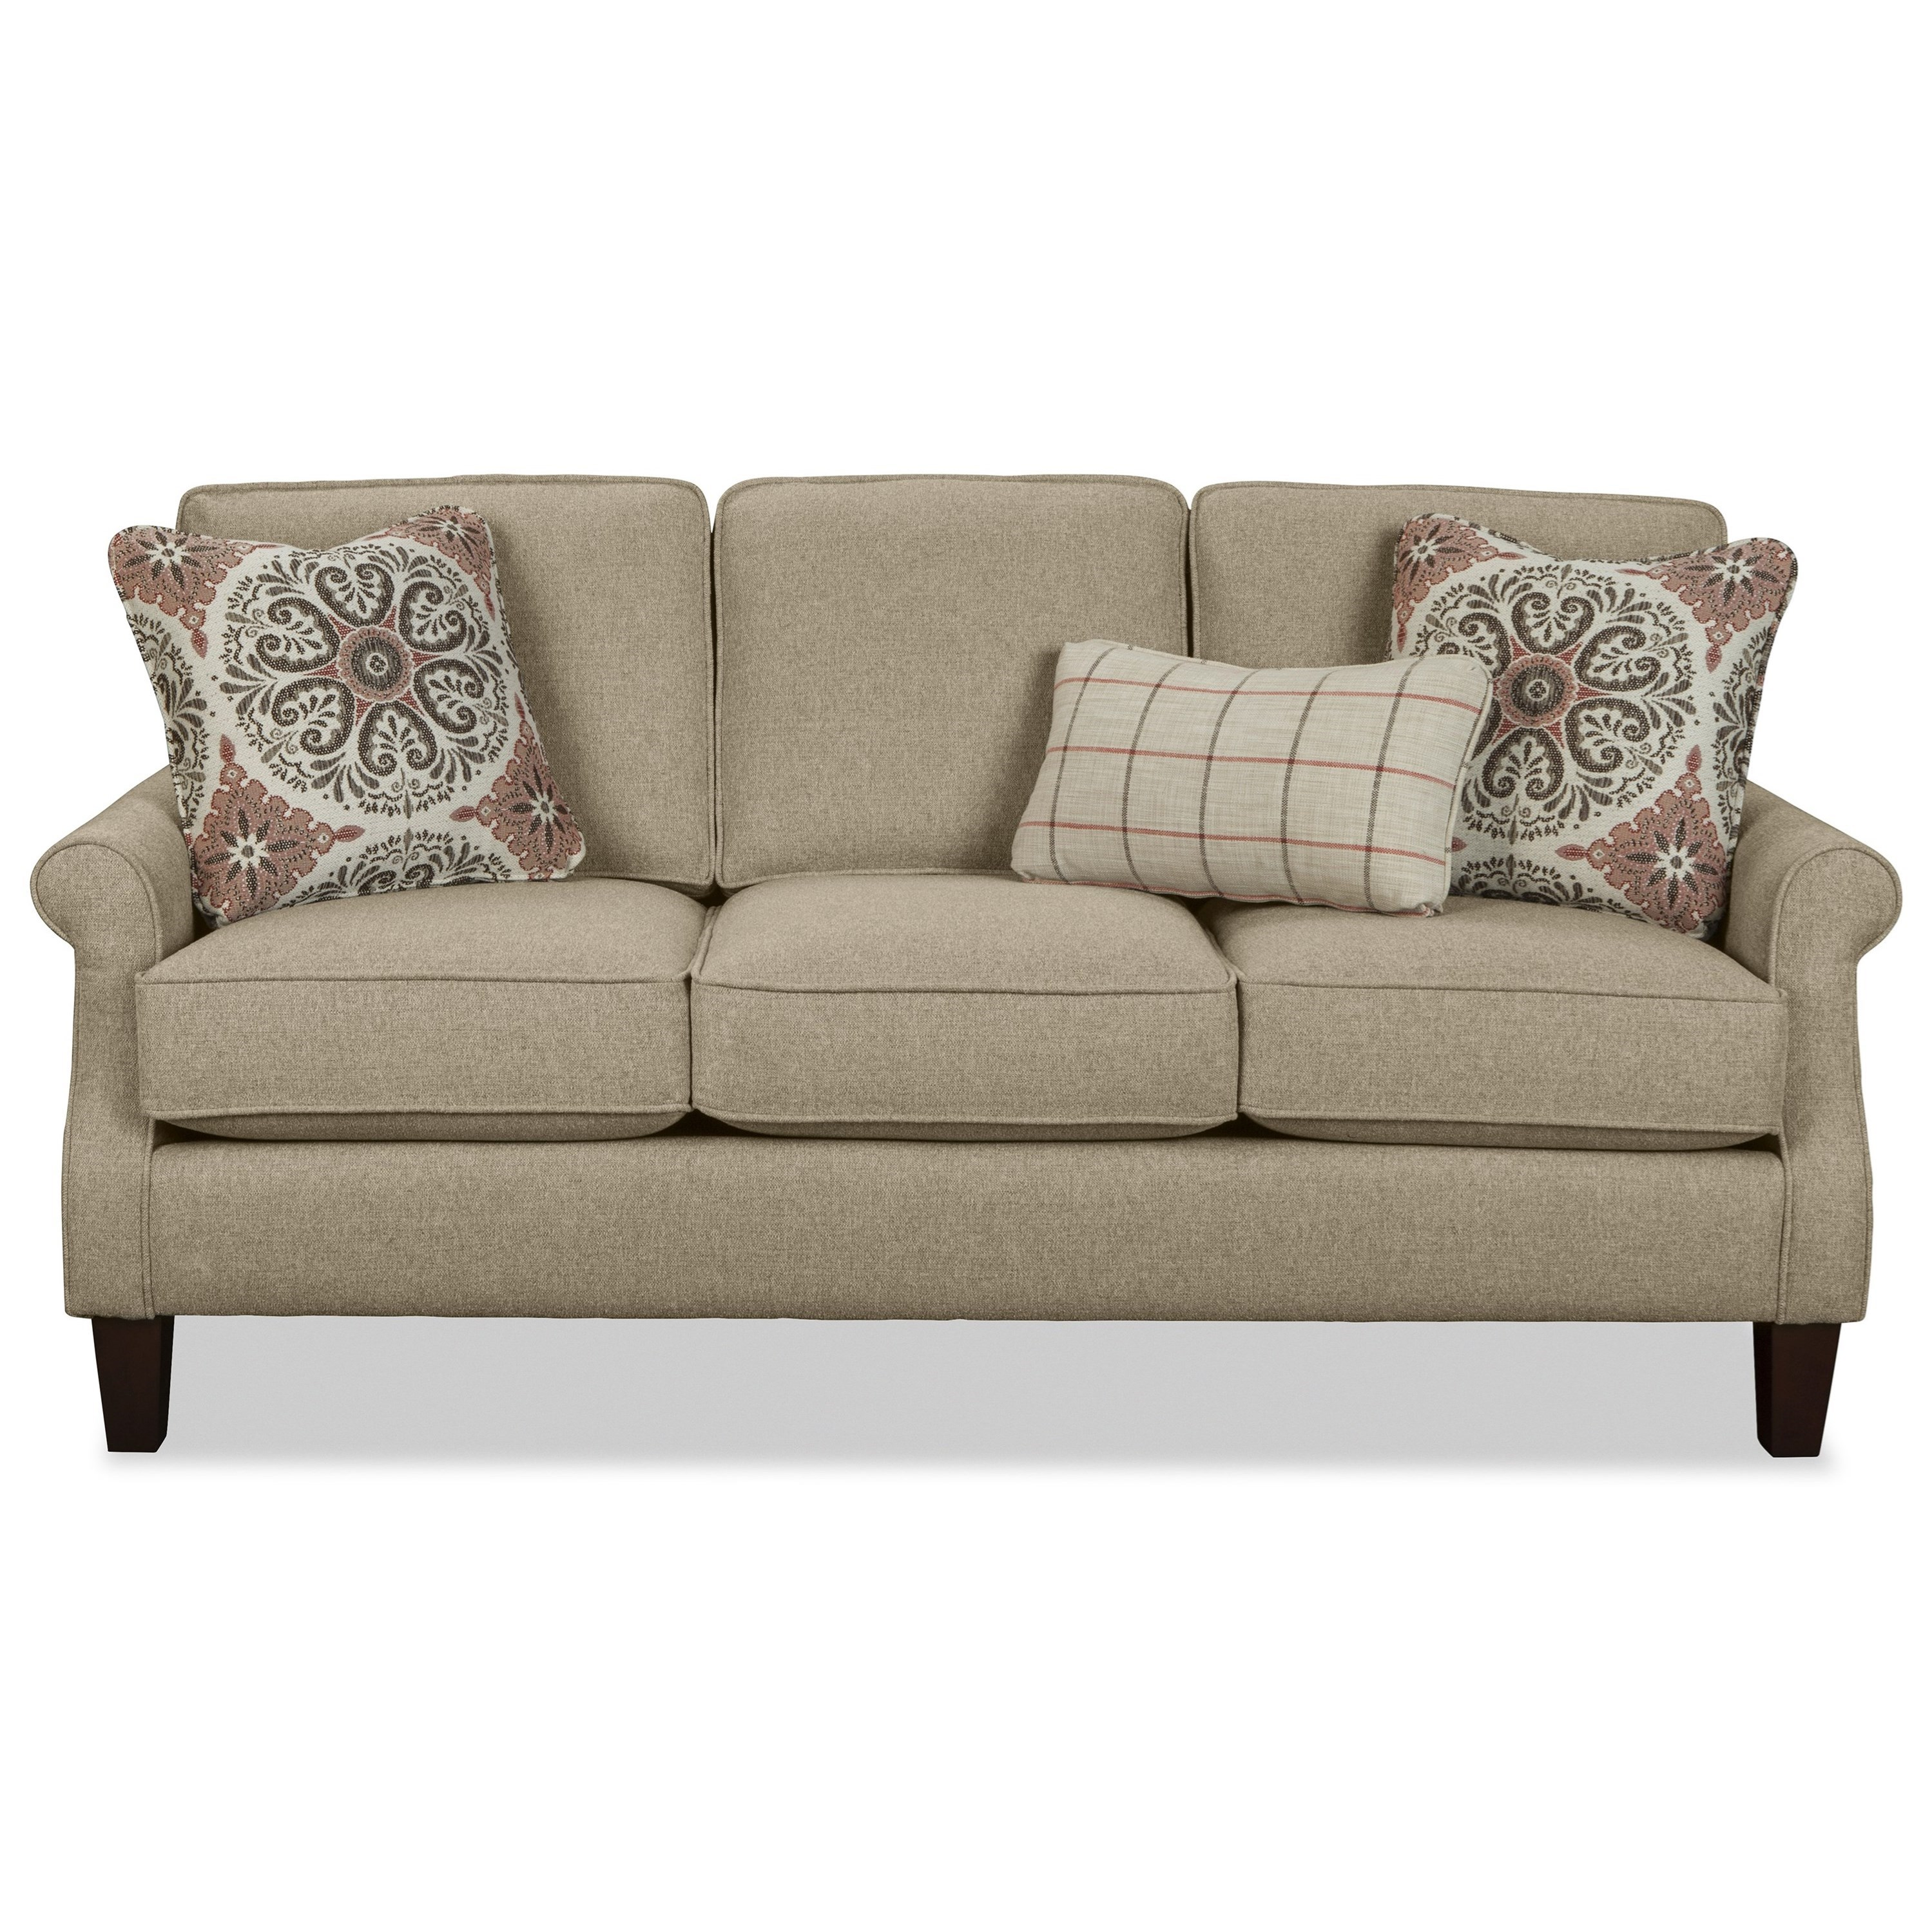 craftmaster 7719 apartment size sofa with rolled arms 87924